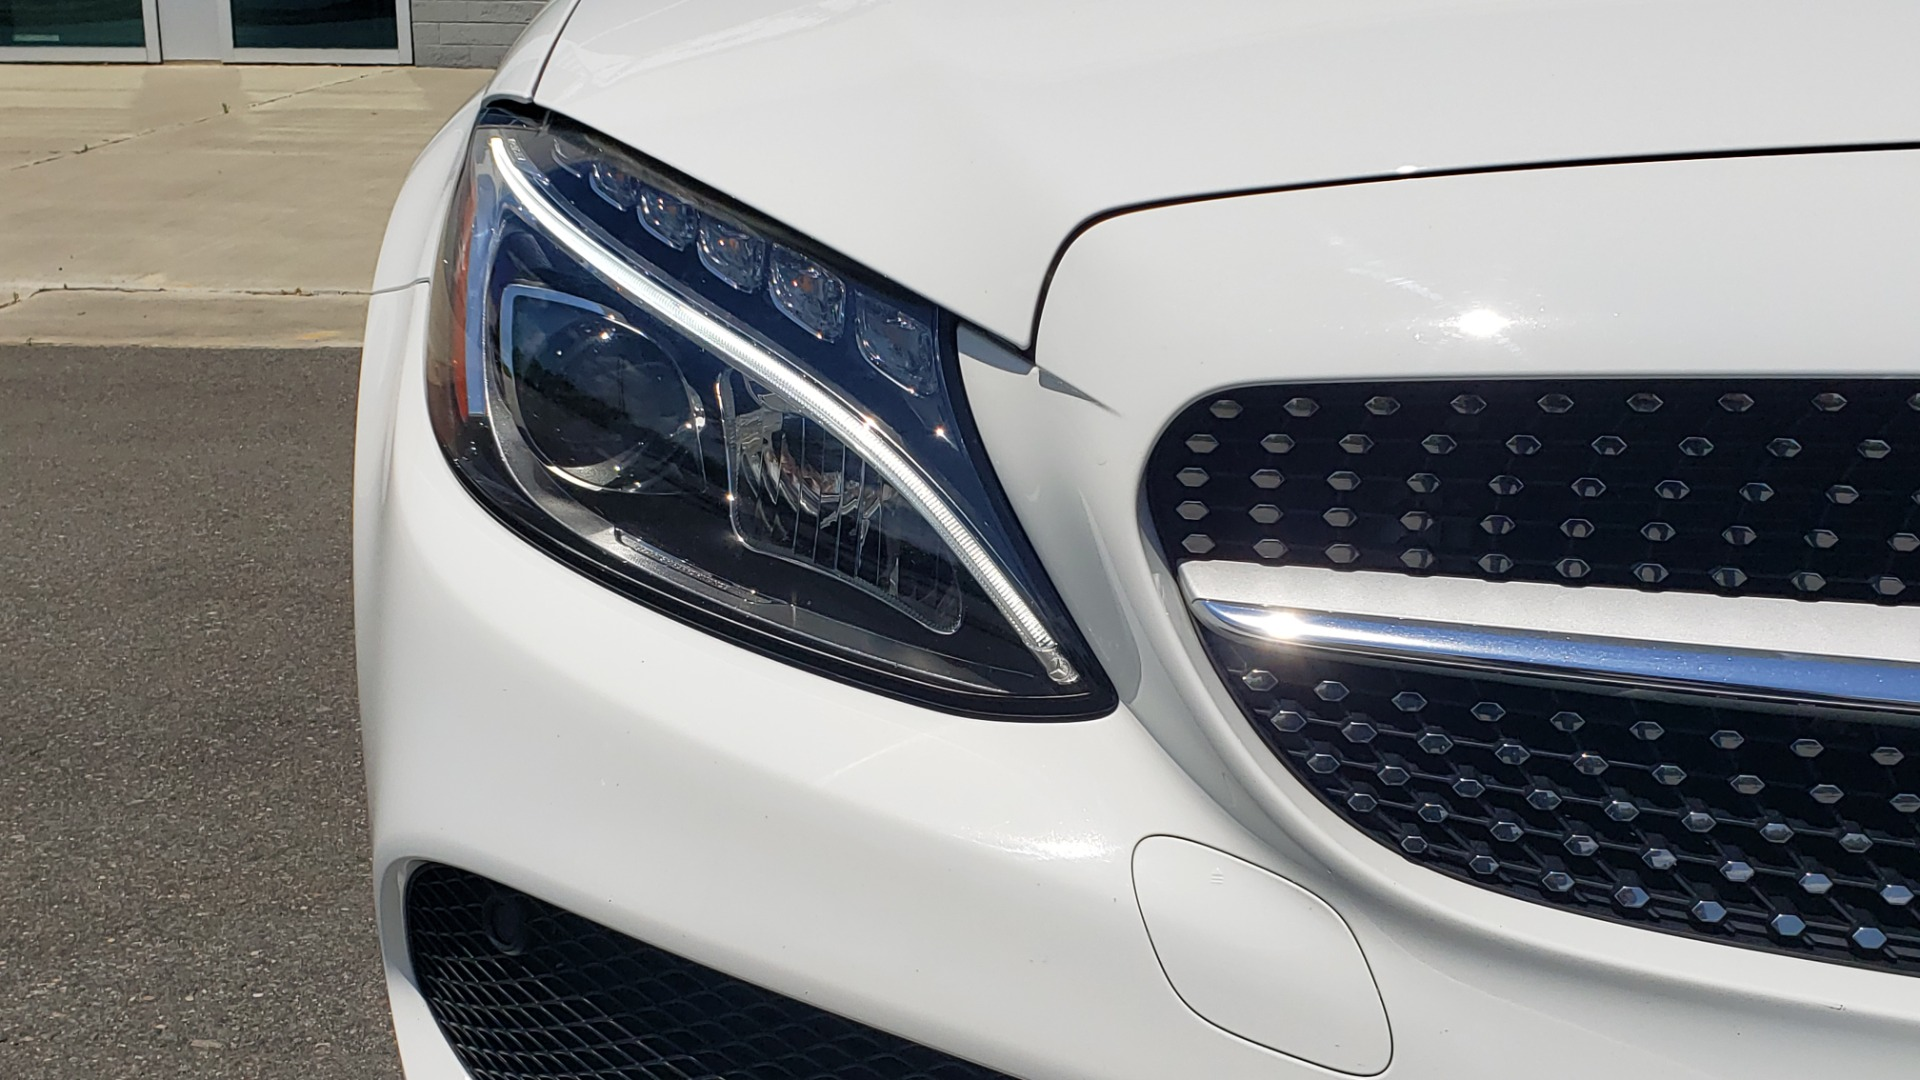 Used 2018 Mercedes-Benz C-CLASS C 300 CABRIOLET PREMIUM / AWD / BURMESTER SND / APPLE / REARVIEW for sale $44,995 at Formula Imports in Charlotte NC 28227 37